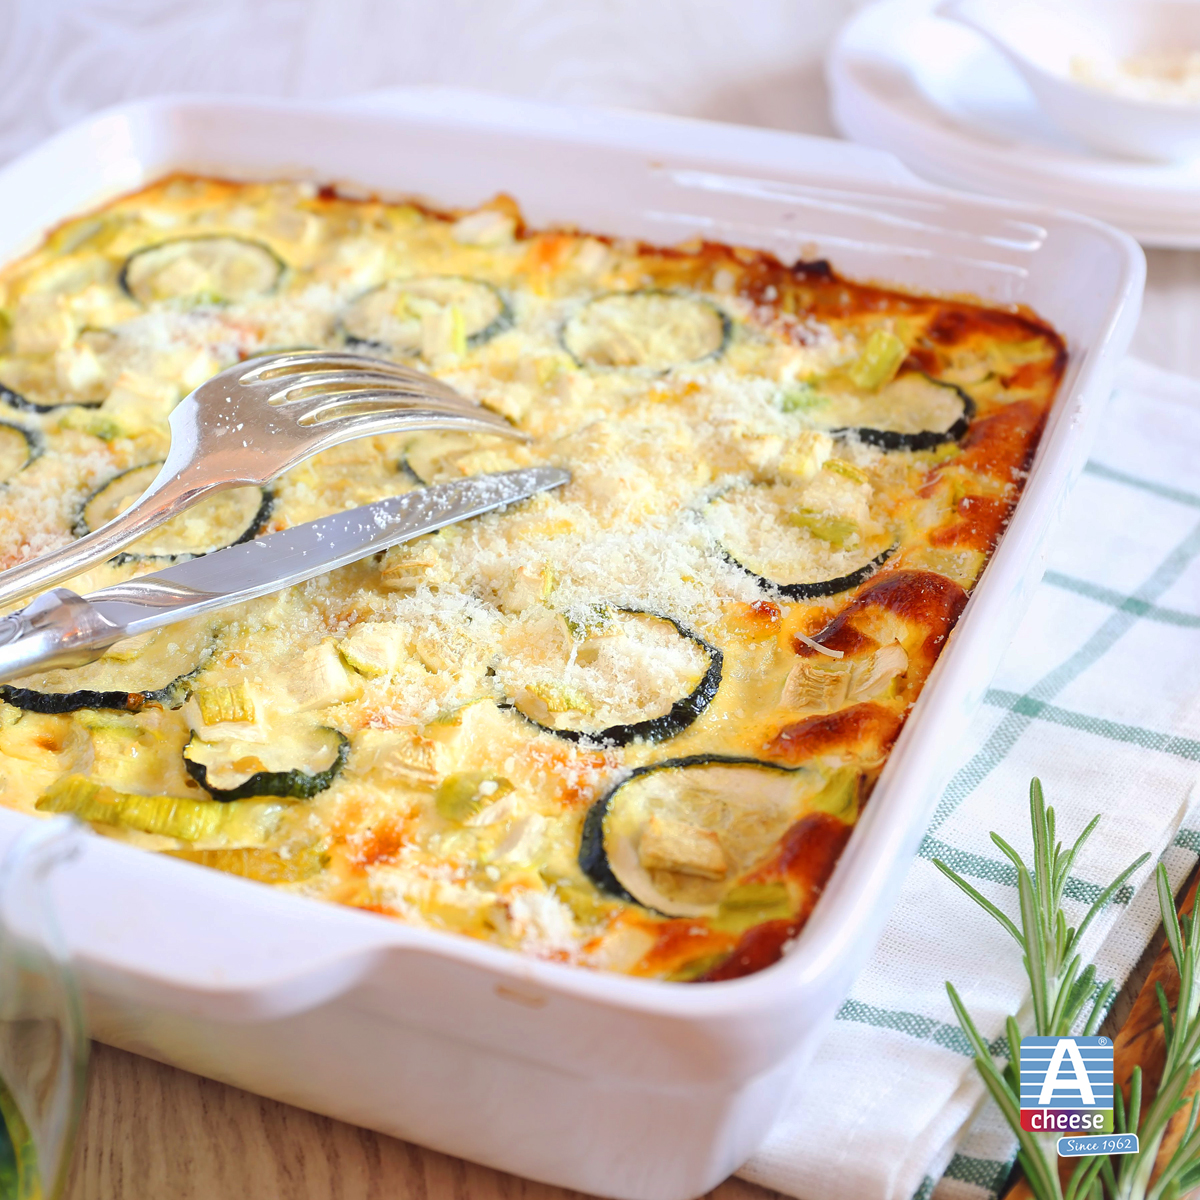 Queso Goya A Cheese Tipo Parmesano